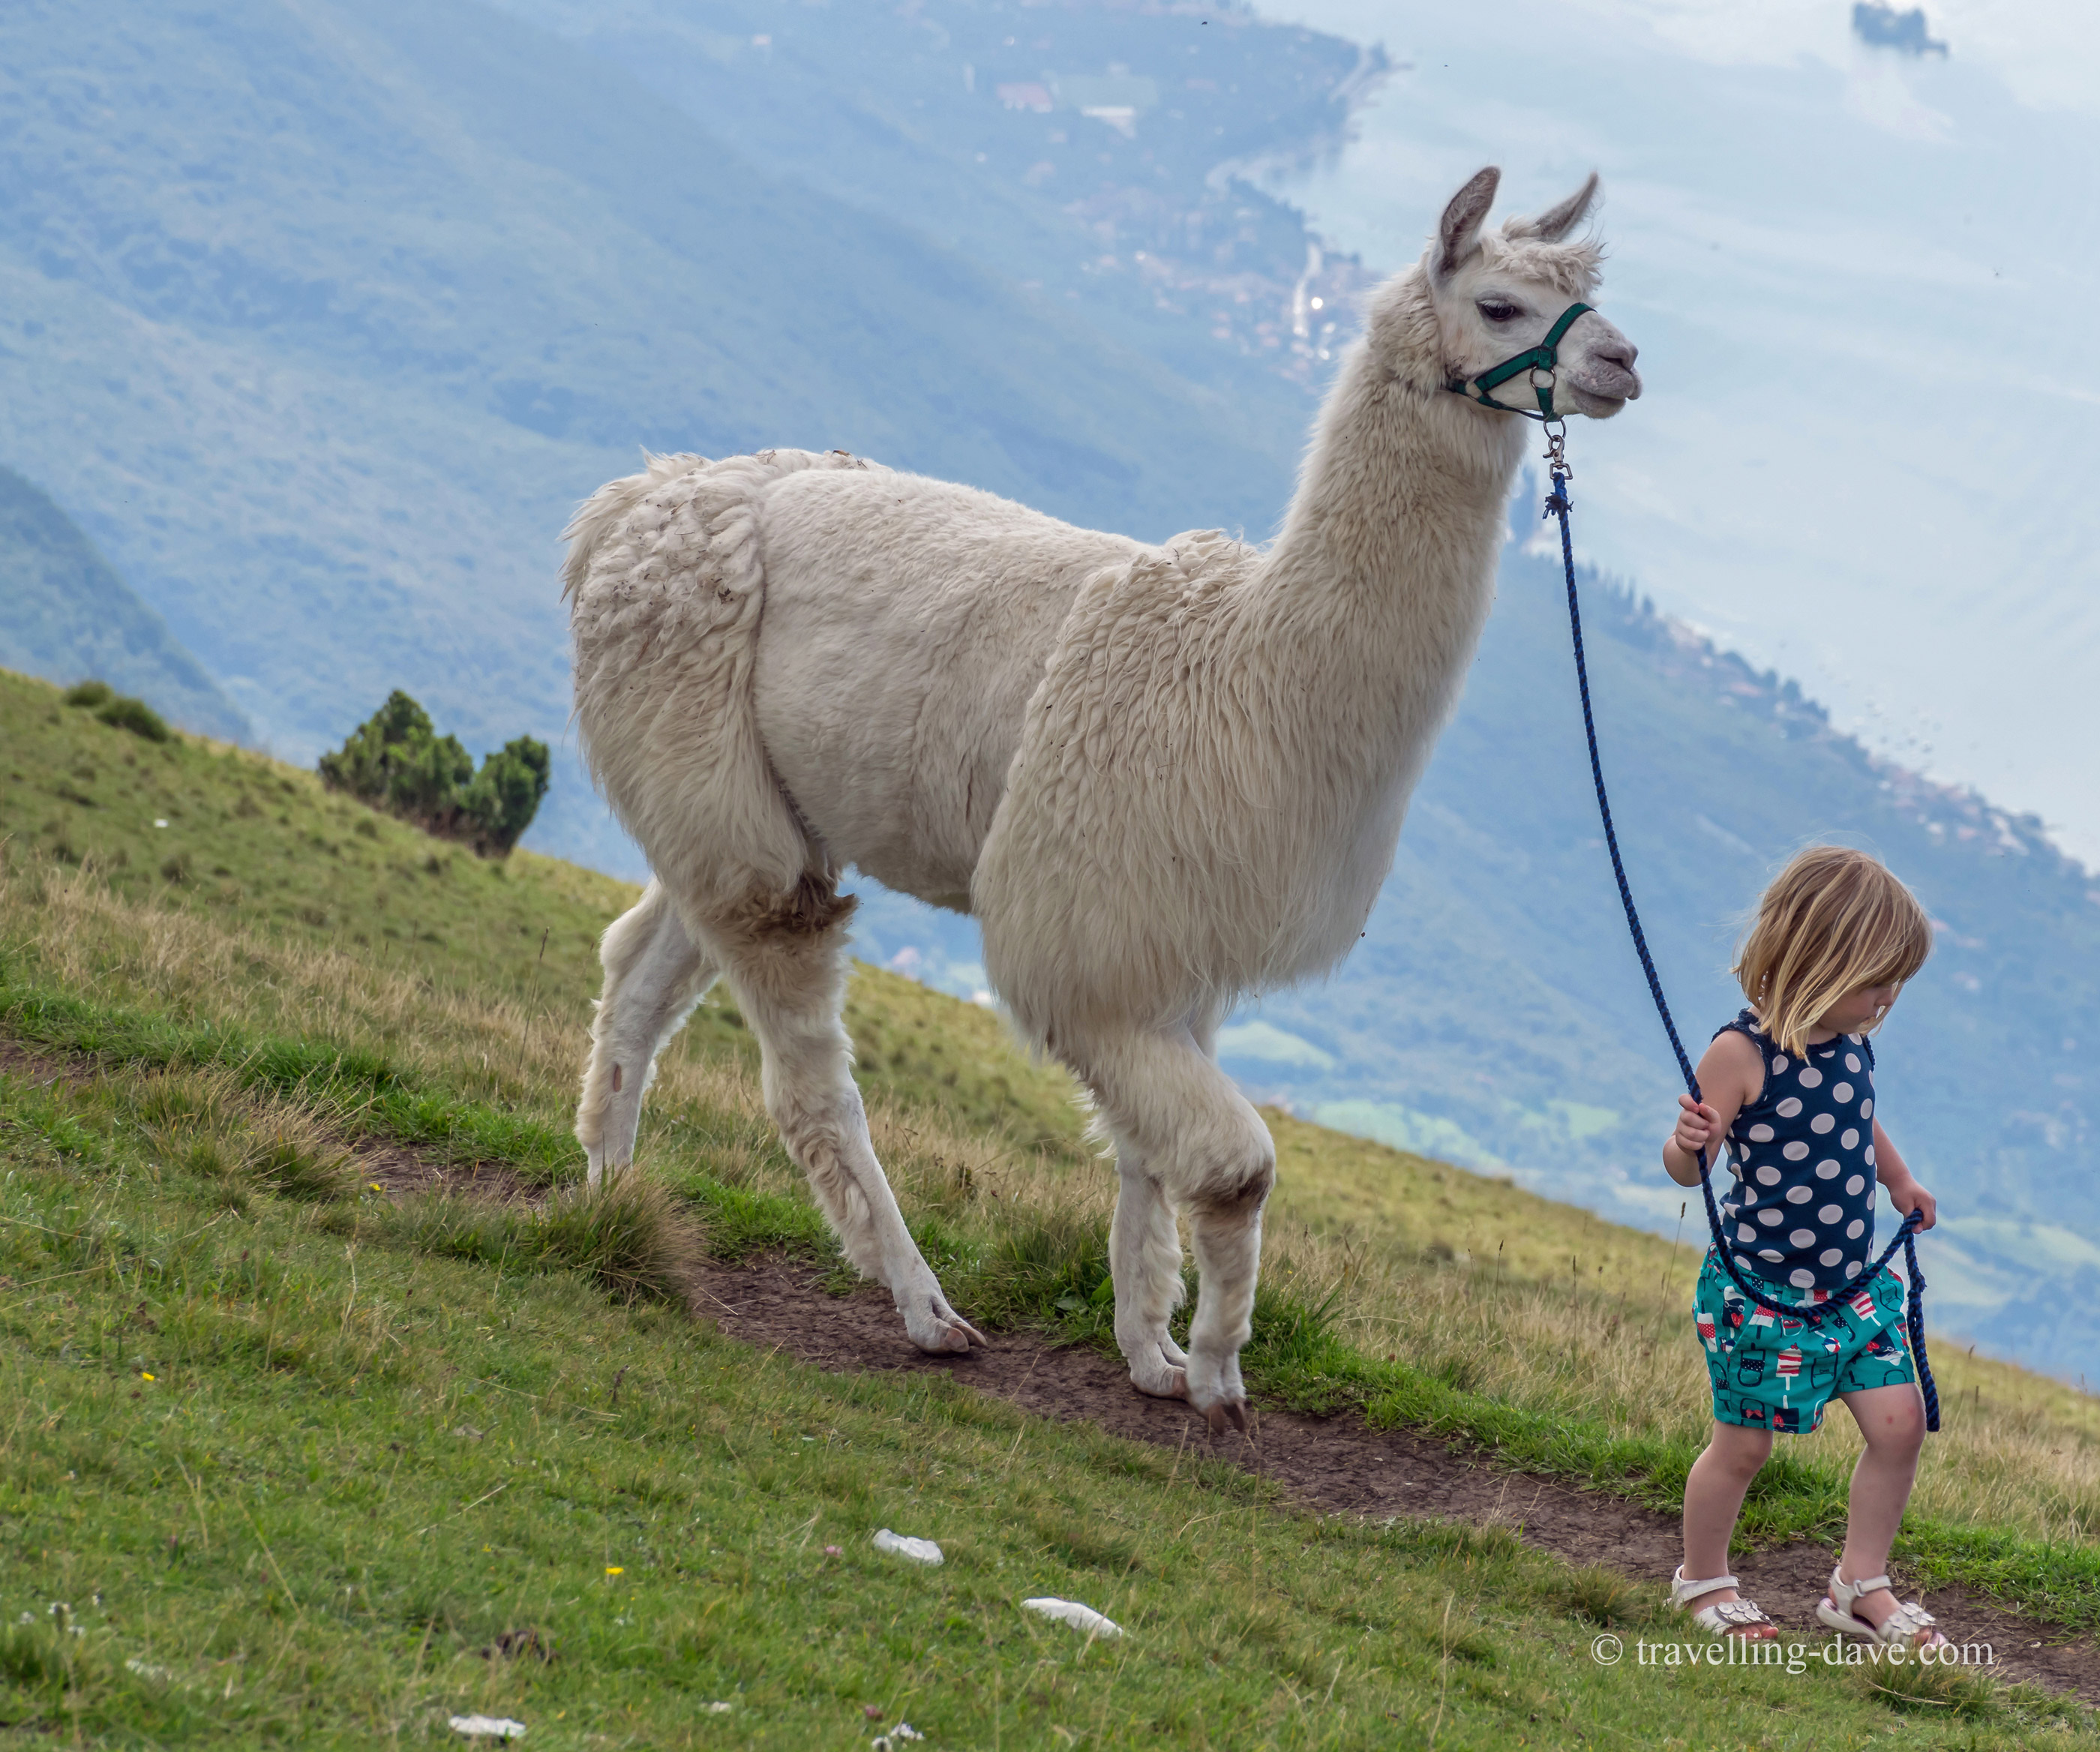 A little girl and an alpaca in Italy